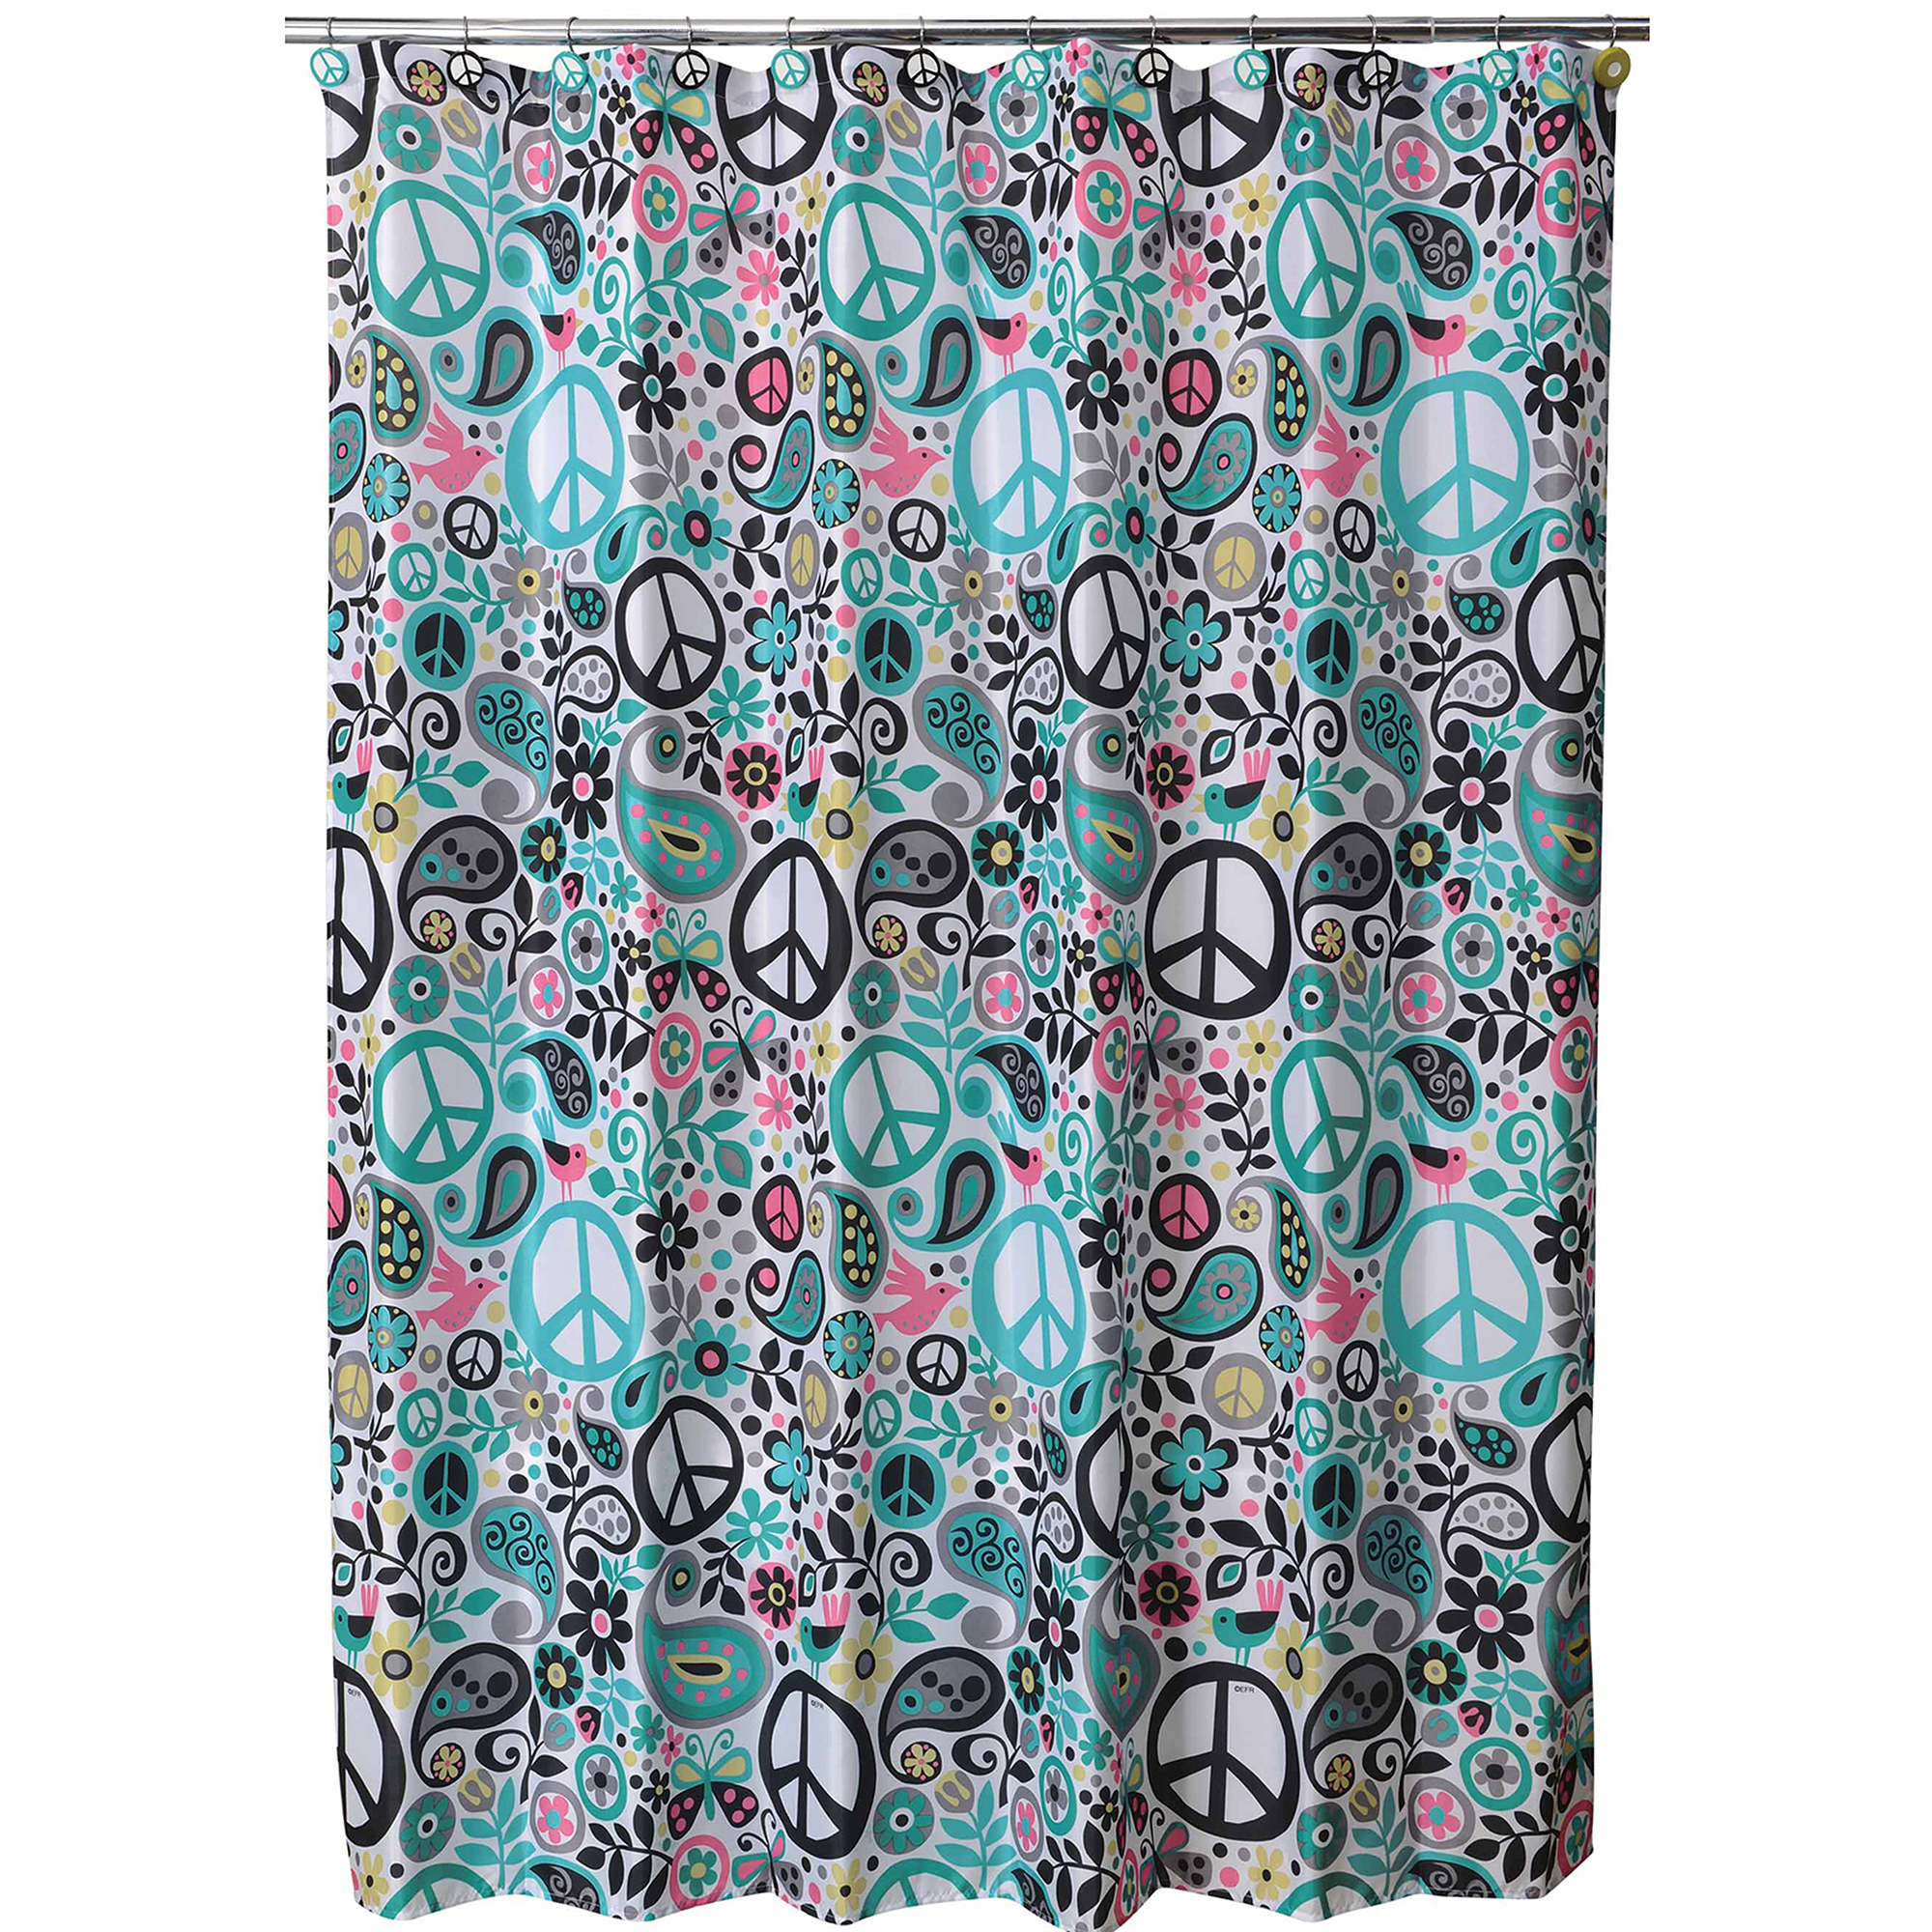 Charmant World Of Peace Shower Curtain